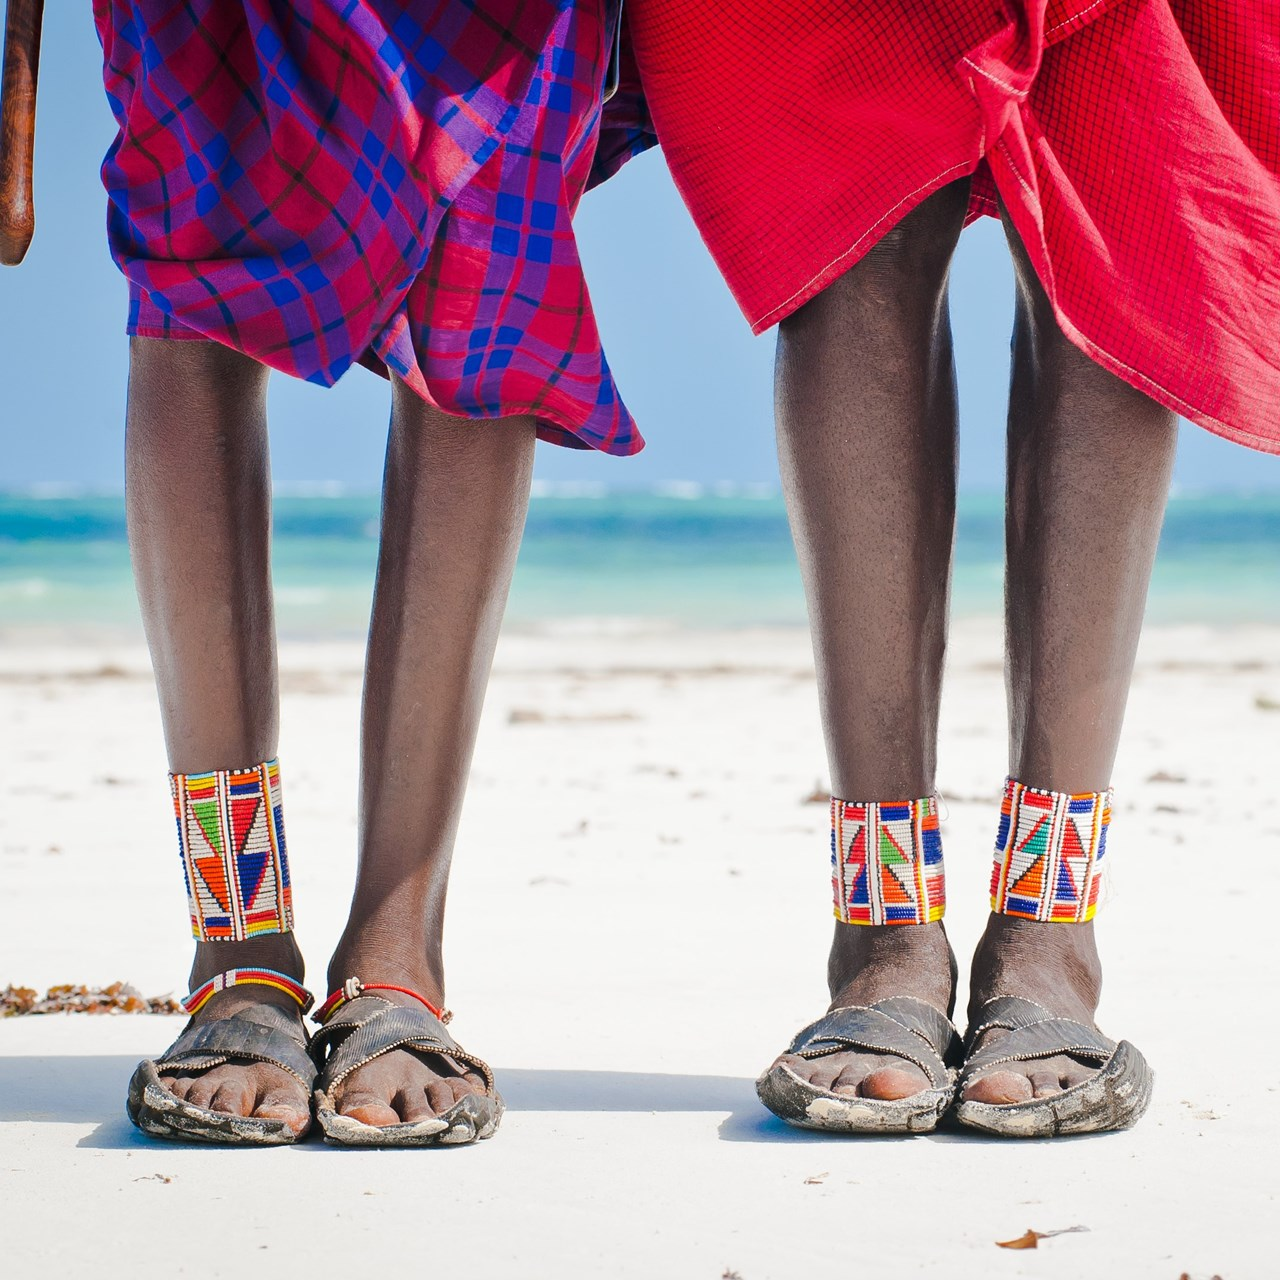 Kenya - Our Ambassadors' Top Picks